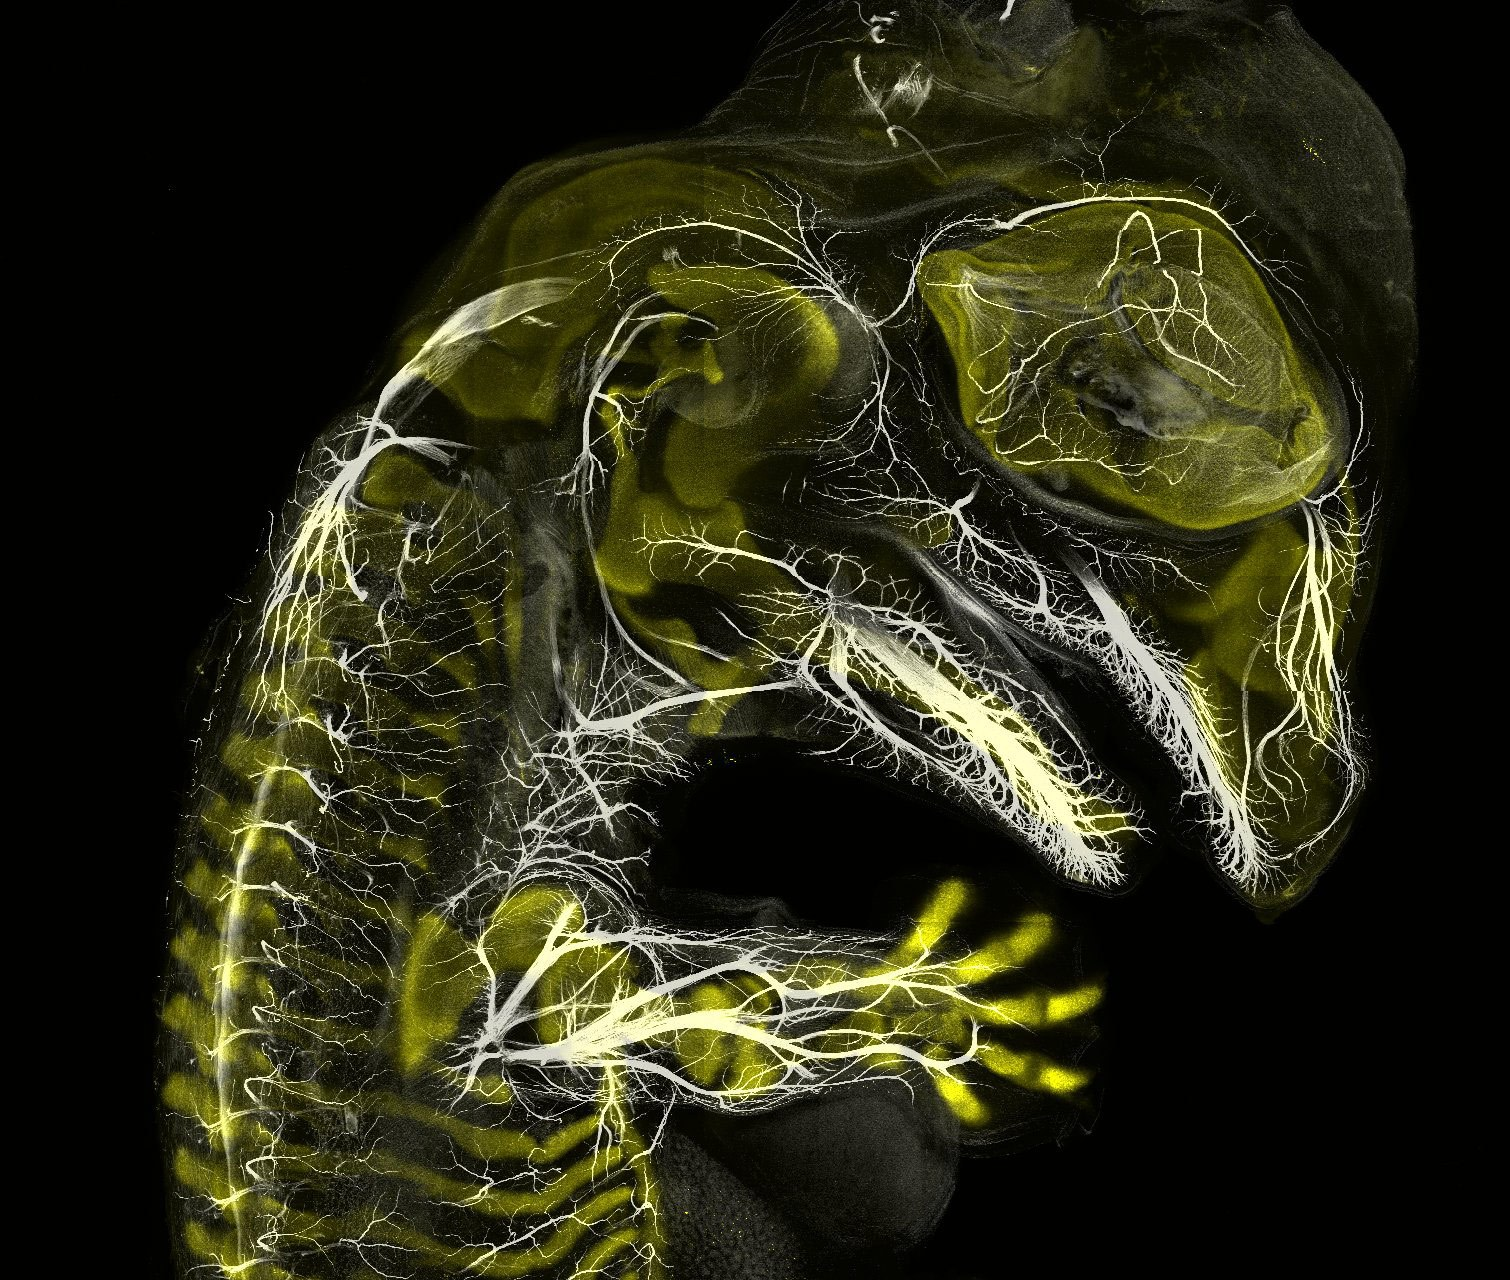 n3-alligator-embryo-stage-13-nerves-and-cartilage.jpg